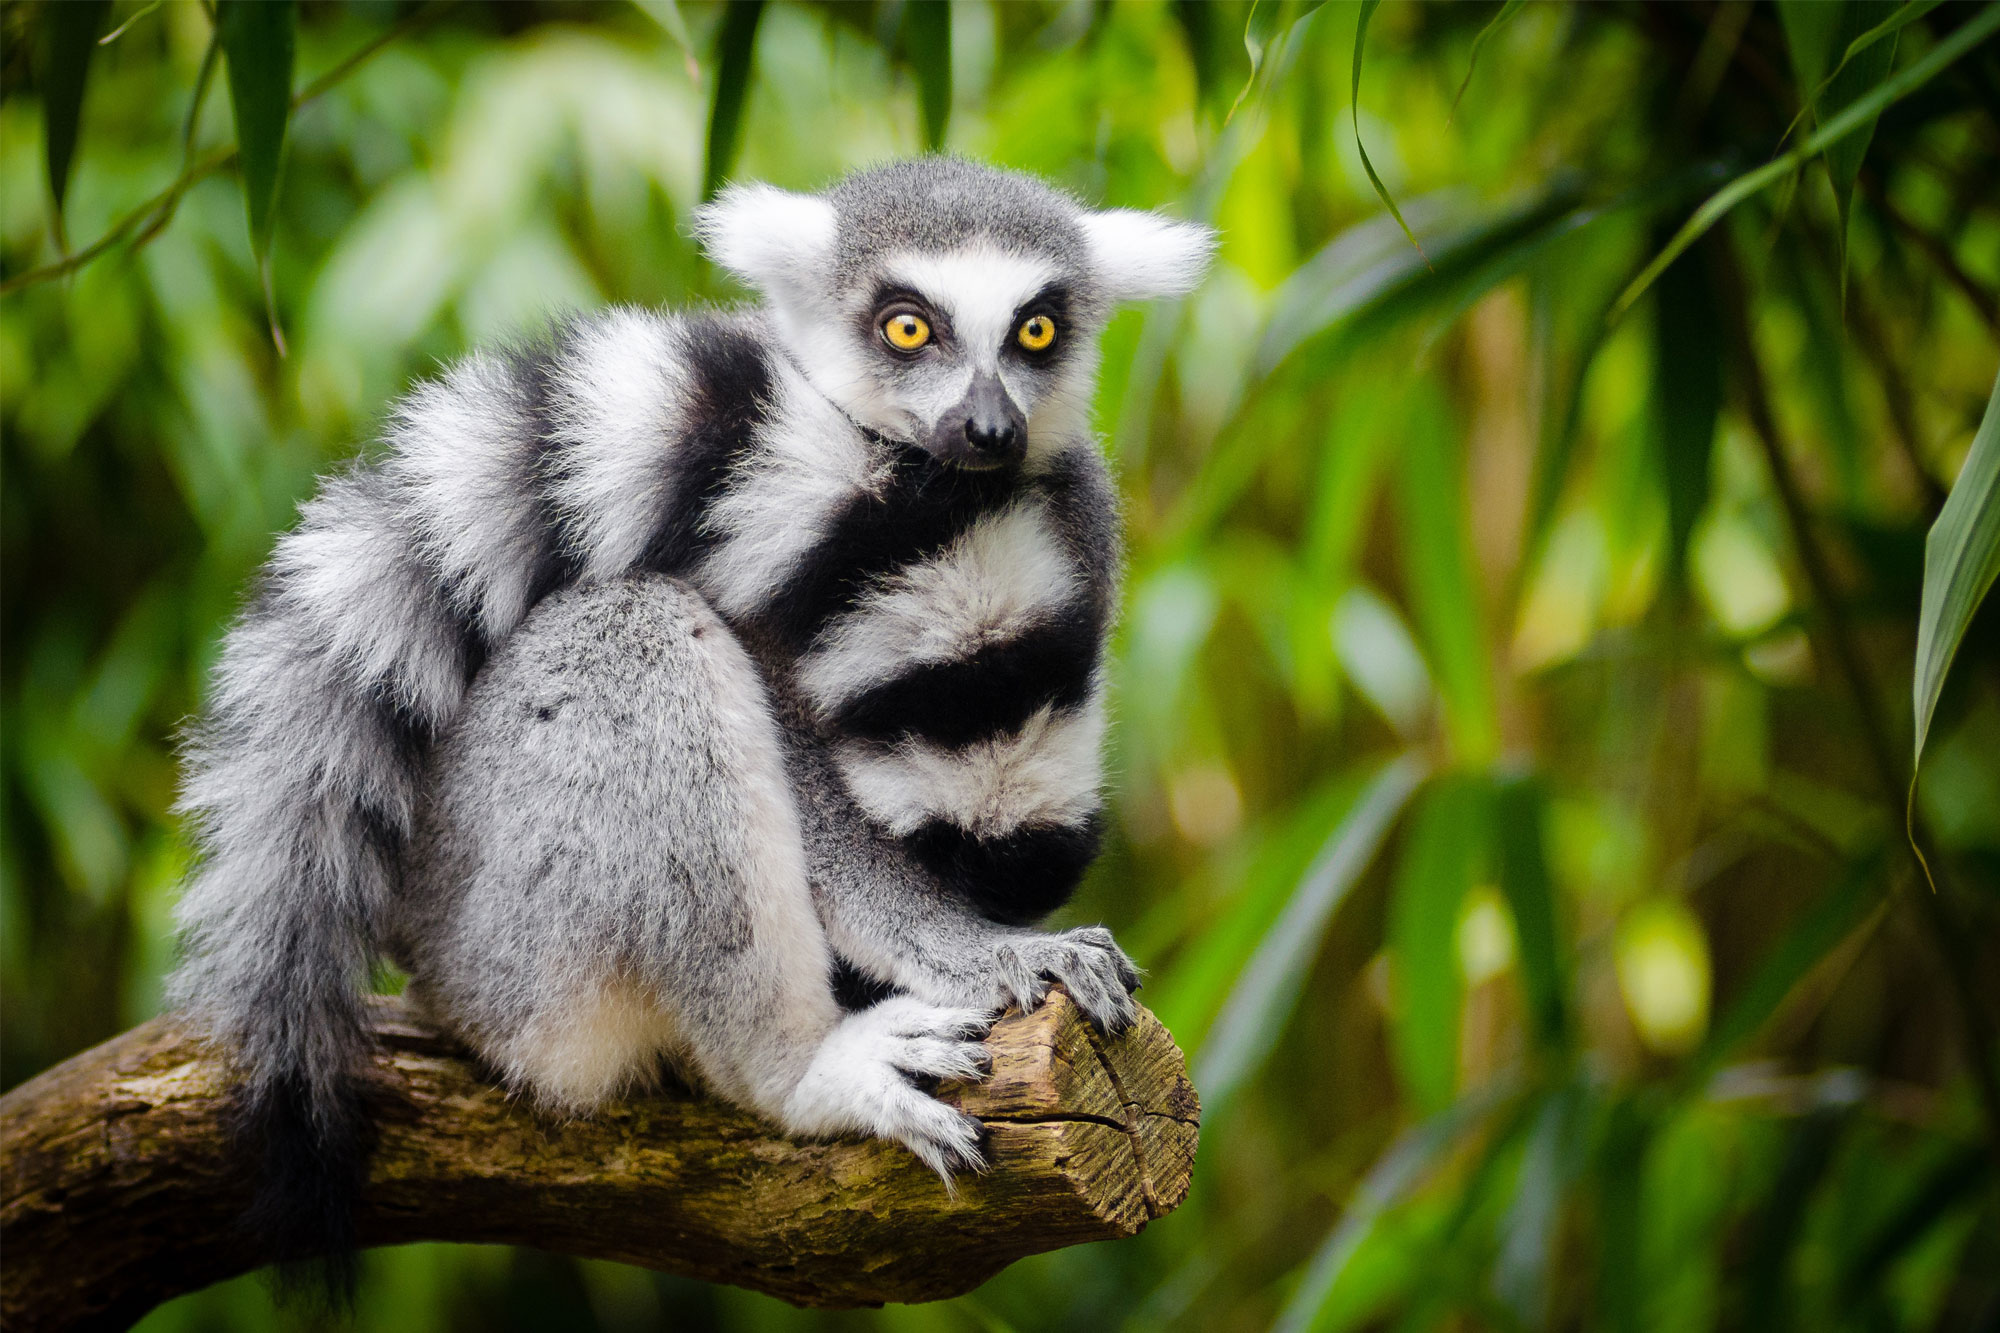 The lemur is one animal that the NNL policy of the Ambatovy Mine Development Project seeks to protect